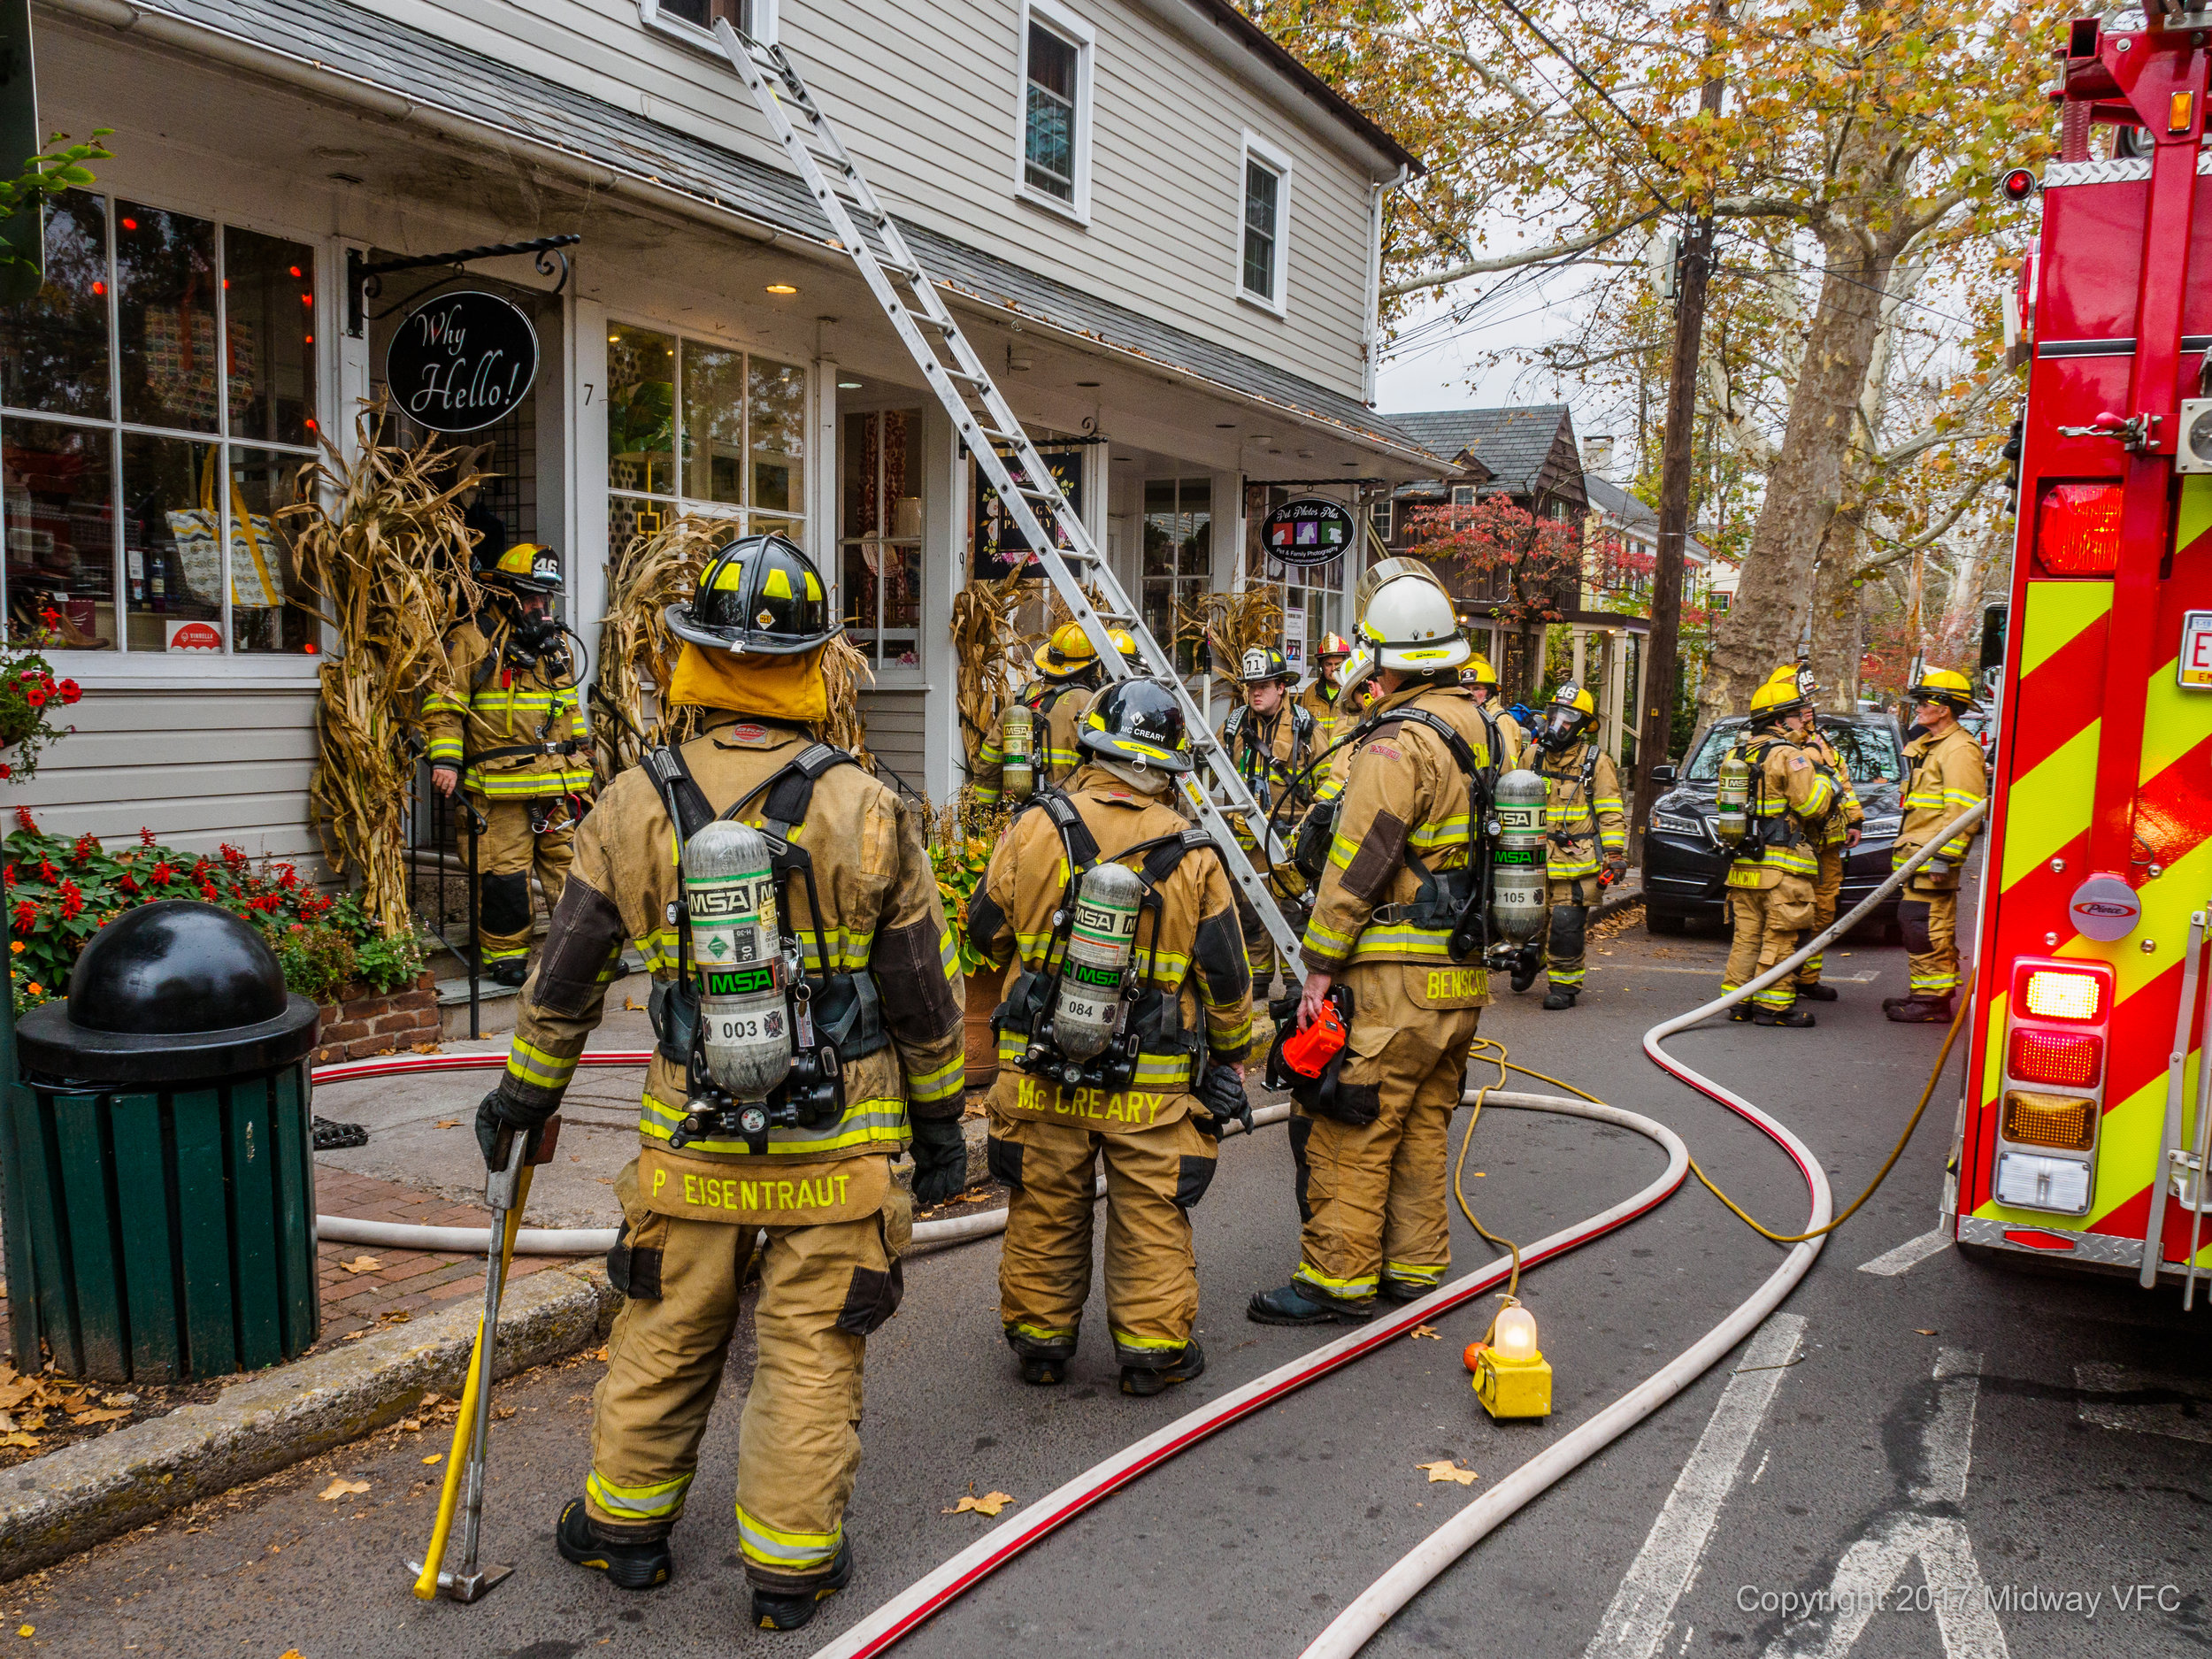 2017.11.09 AT 1:44 PM Midway Volunteer Fire Company provided mutual aid to Eagle Volunteer Fire Company in responding to a fire in a retail establishment on Main Street in New Hope, PA. There were no reported injuries at the scene. Cause and damage estimates are being determined.